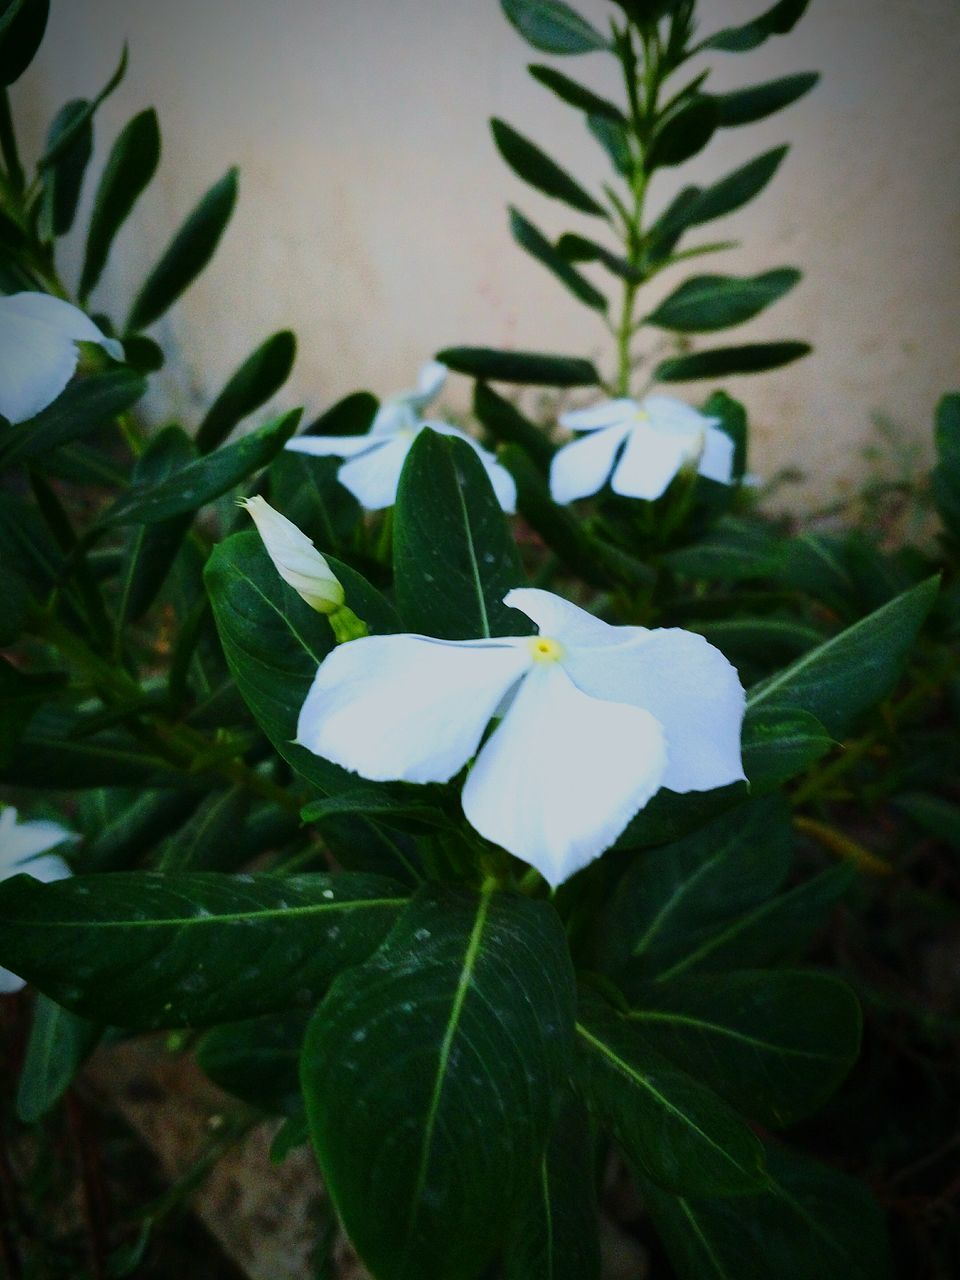 leaf, growth, petal, green color, plant, freshness, nature, fragility, beauty in nature, flower, close-up, flower head, day, no people, snowdrop, outdoors, periwinkle, blooming